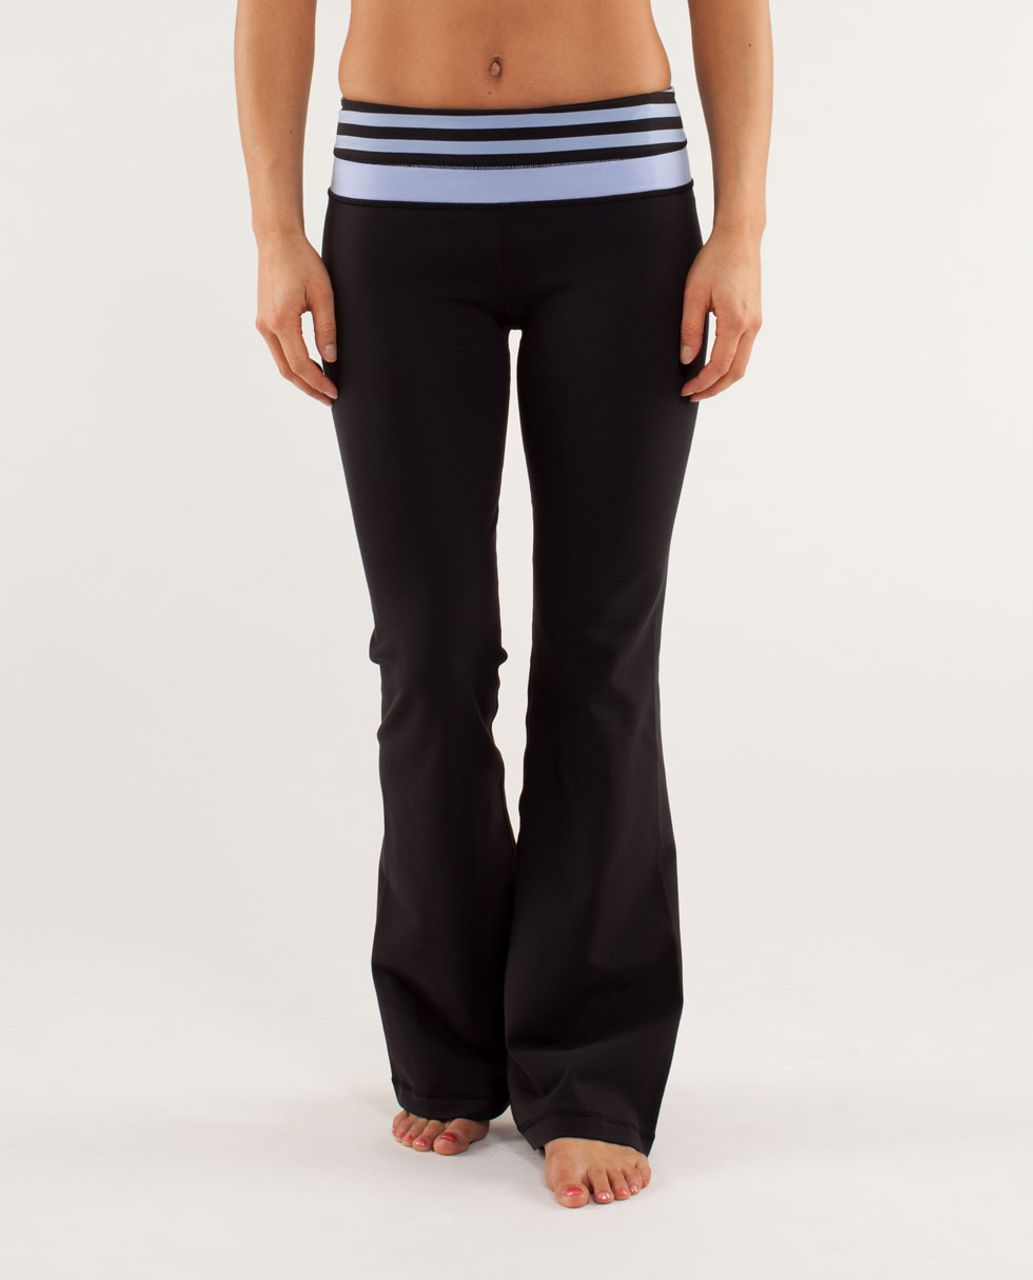 Lululemon Groove Pant *New (Regular) - Black / Sea Stripe Polar Haze Black / Polar Haze